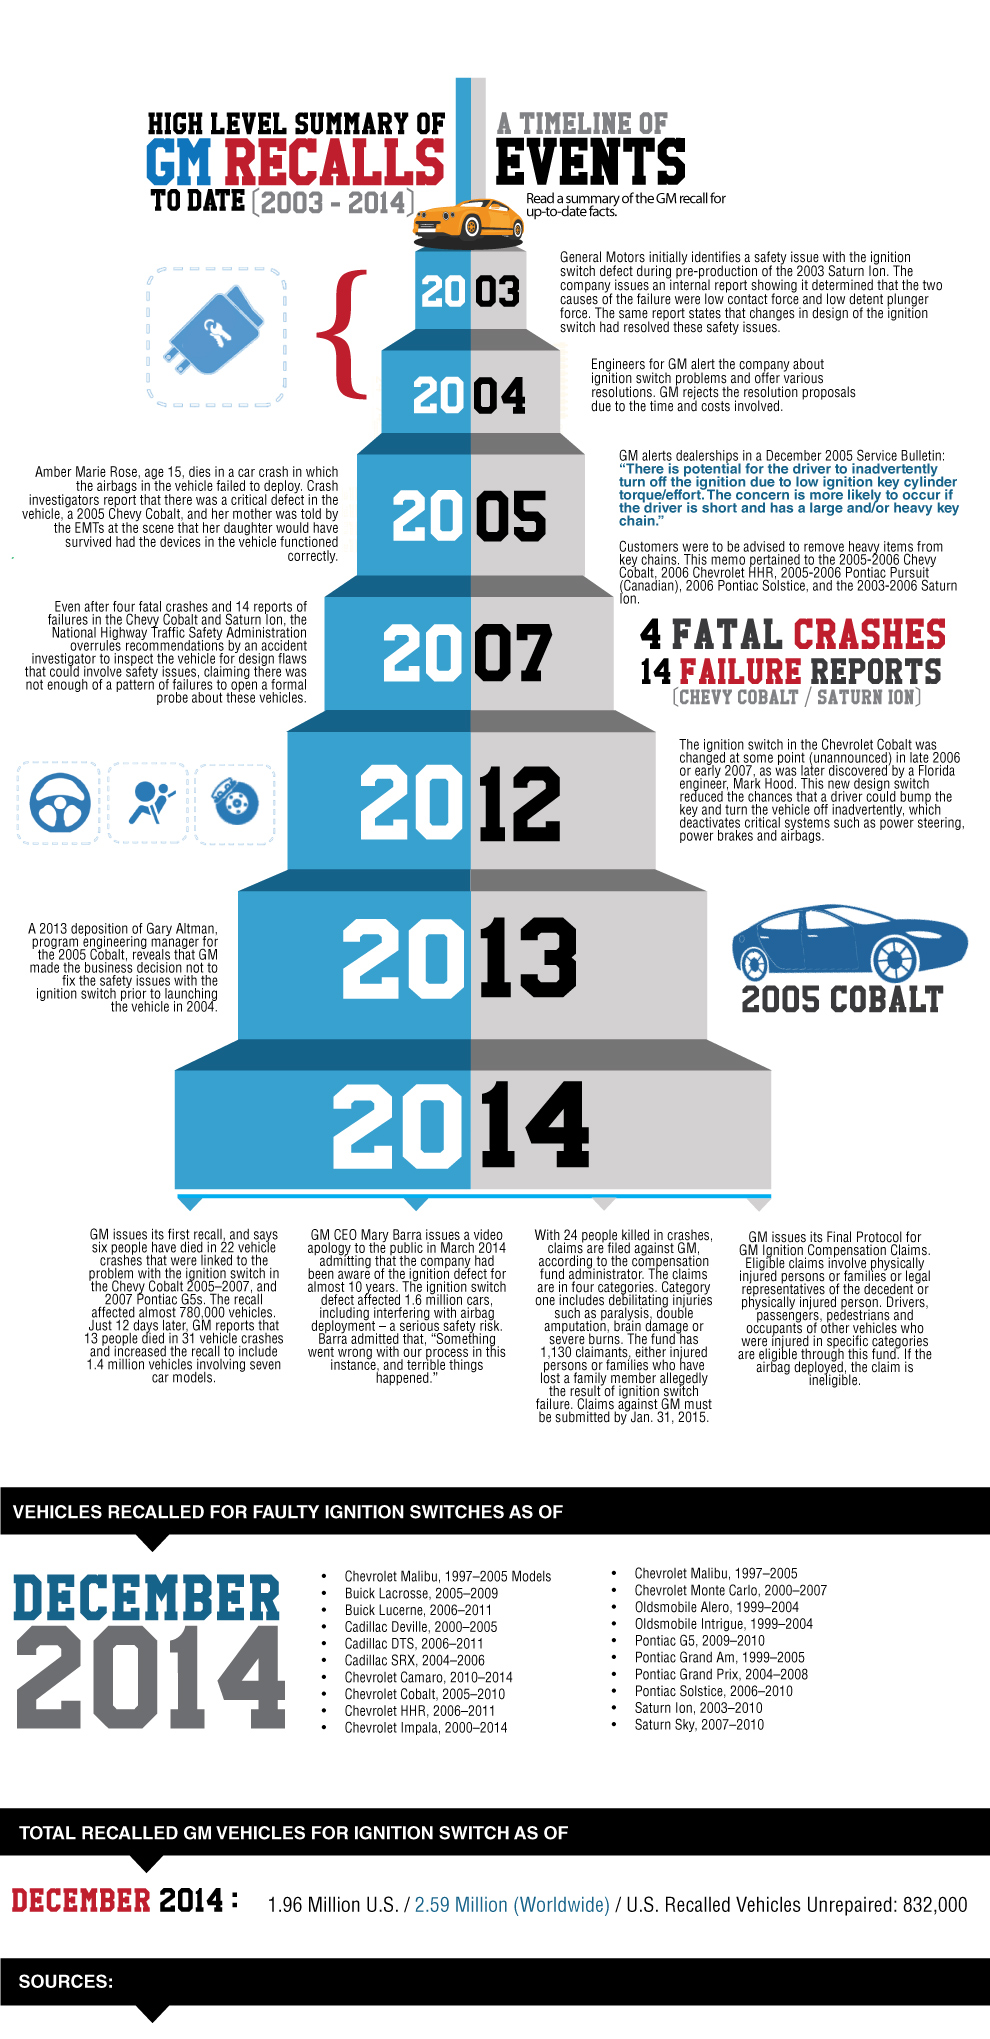 Read a summary of the GM recall for up-to-date facts